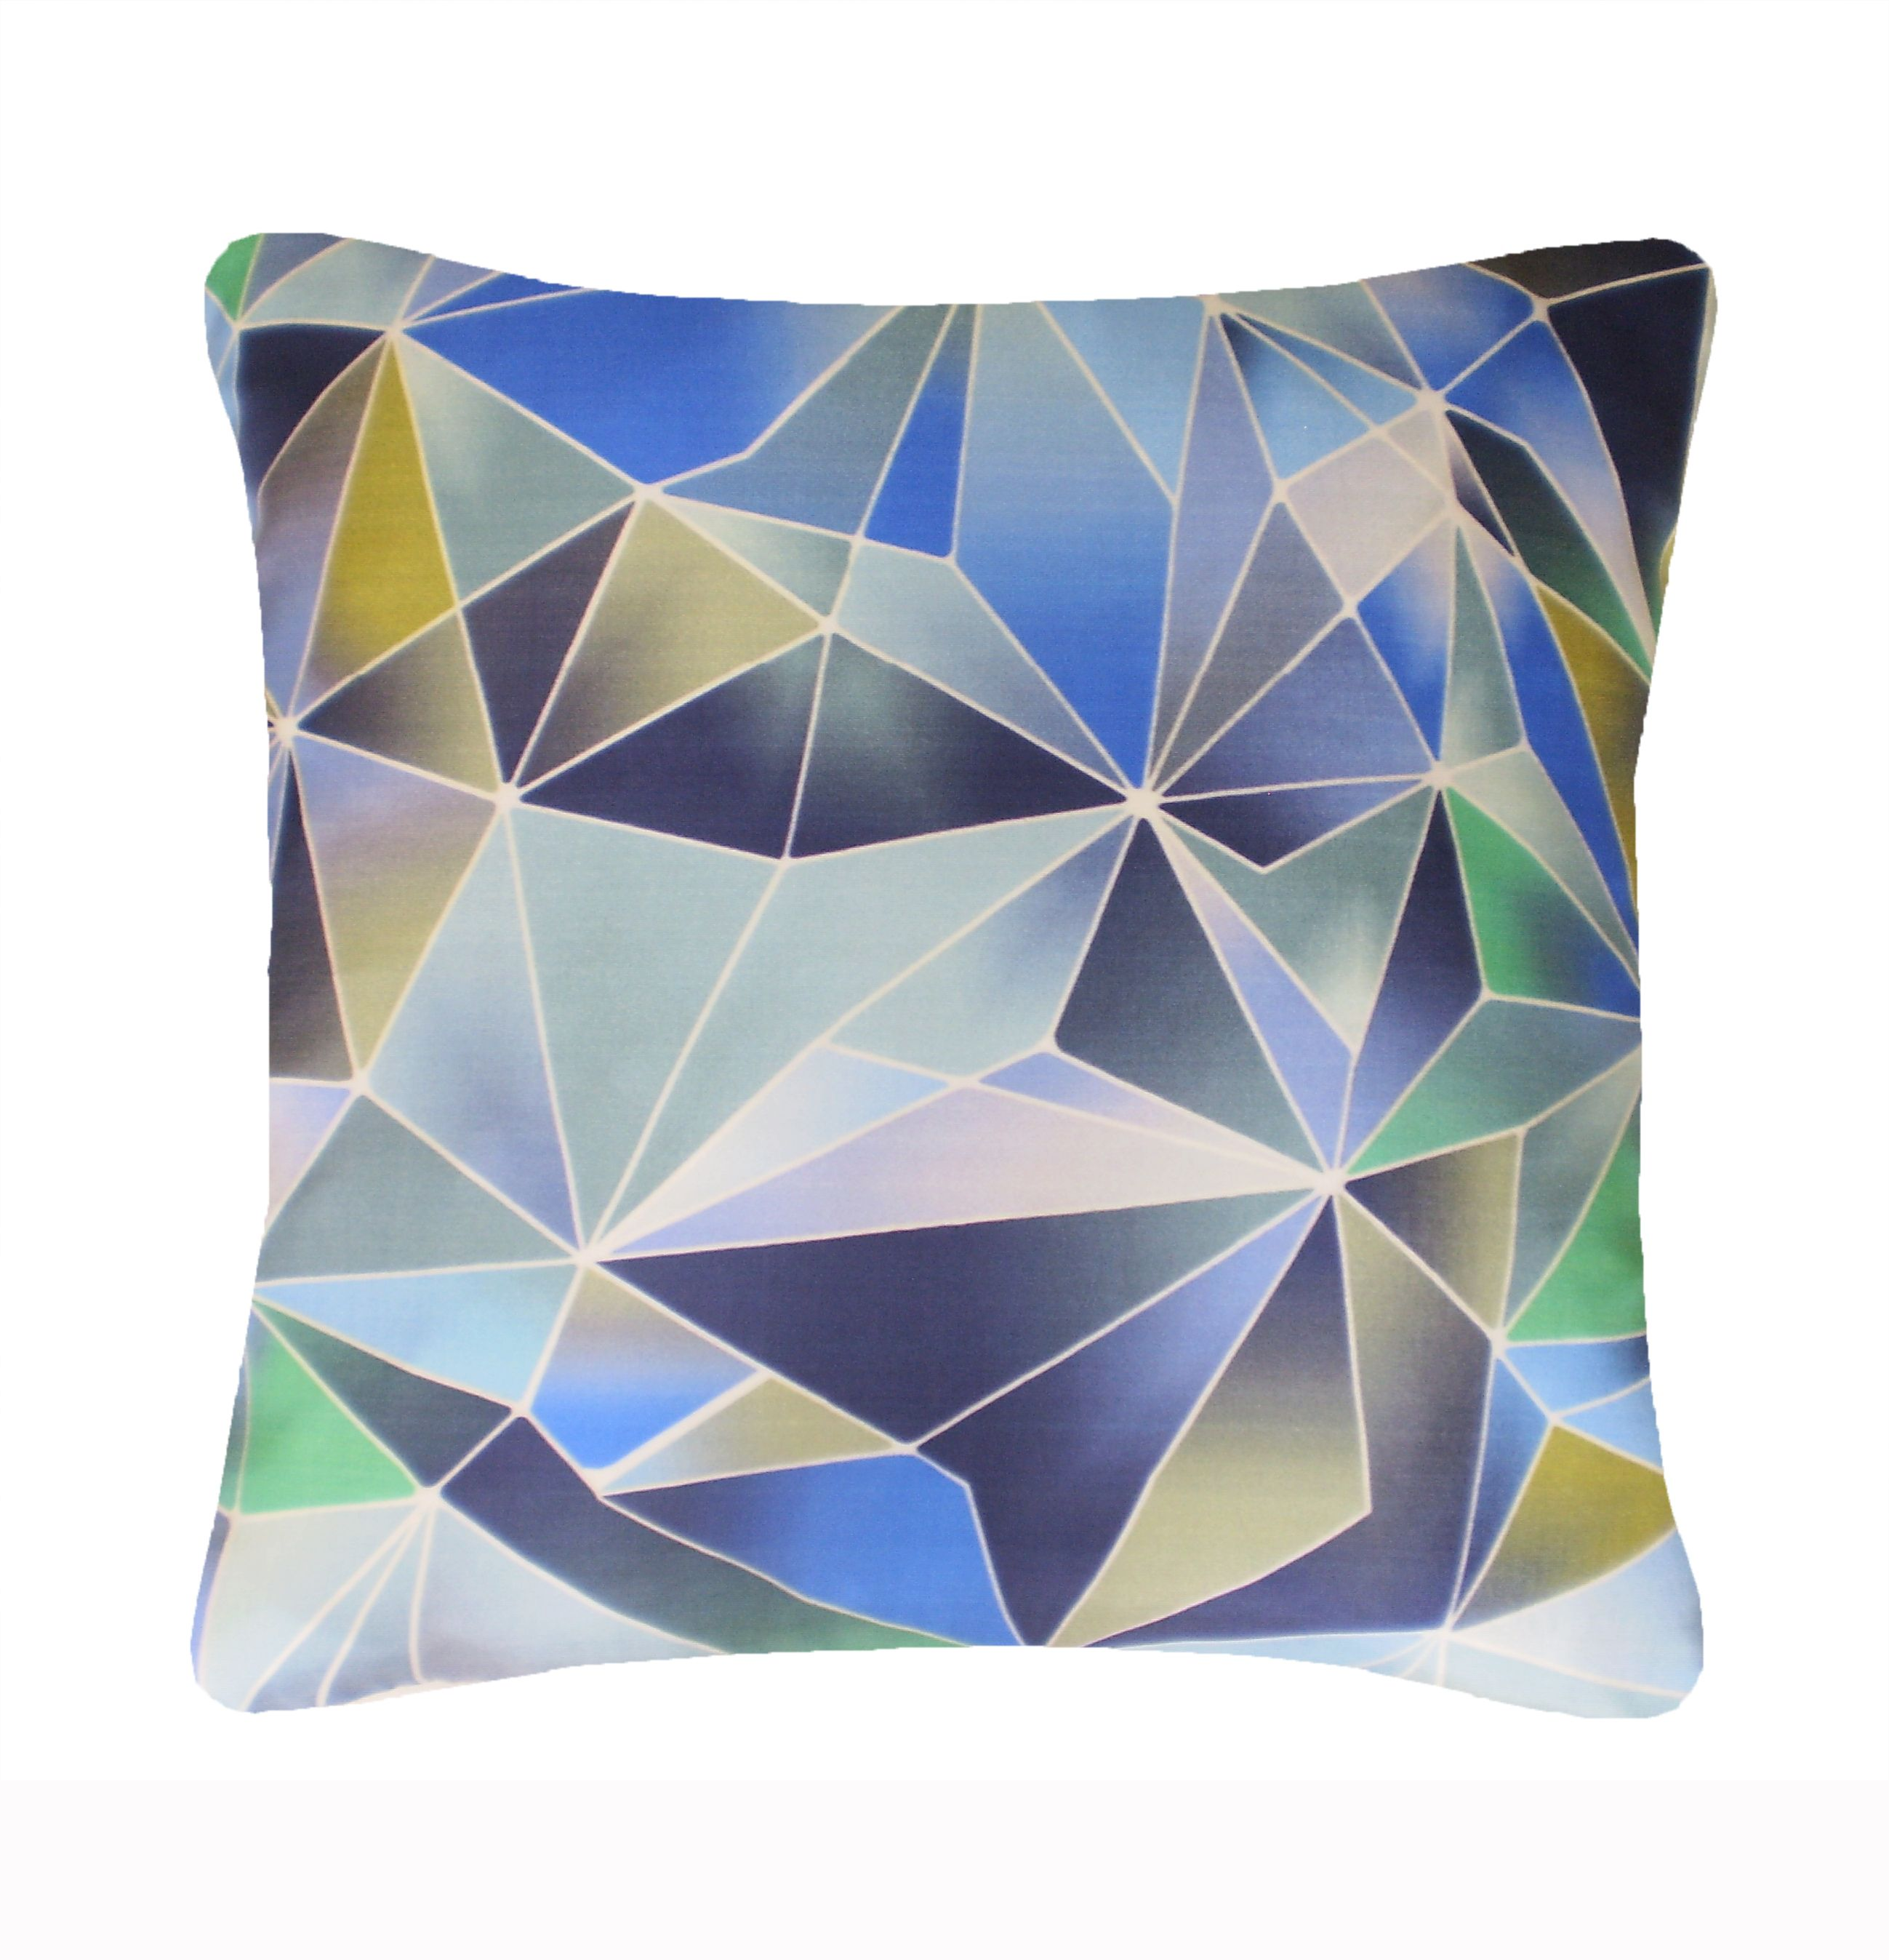 Image of Nitin Goyal Stained Glass cushion in Blue 45x45